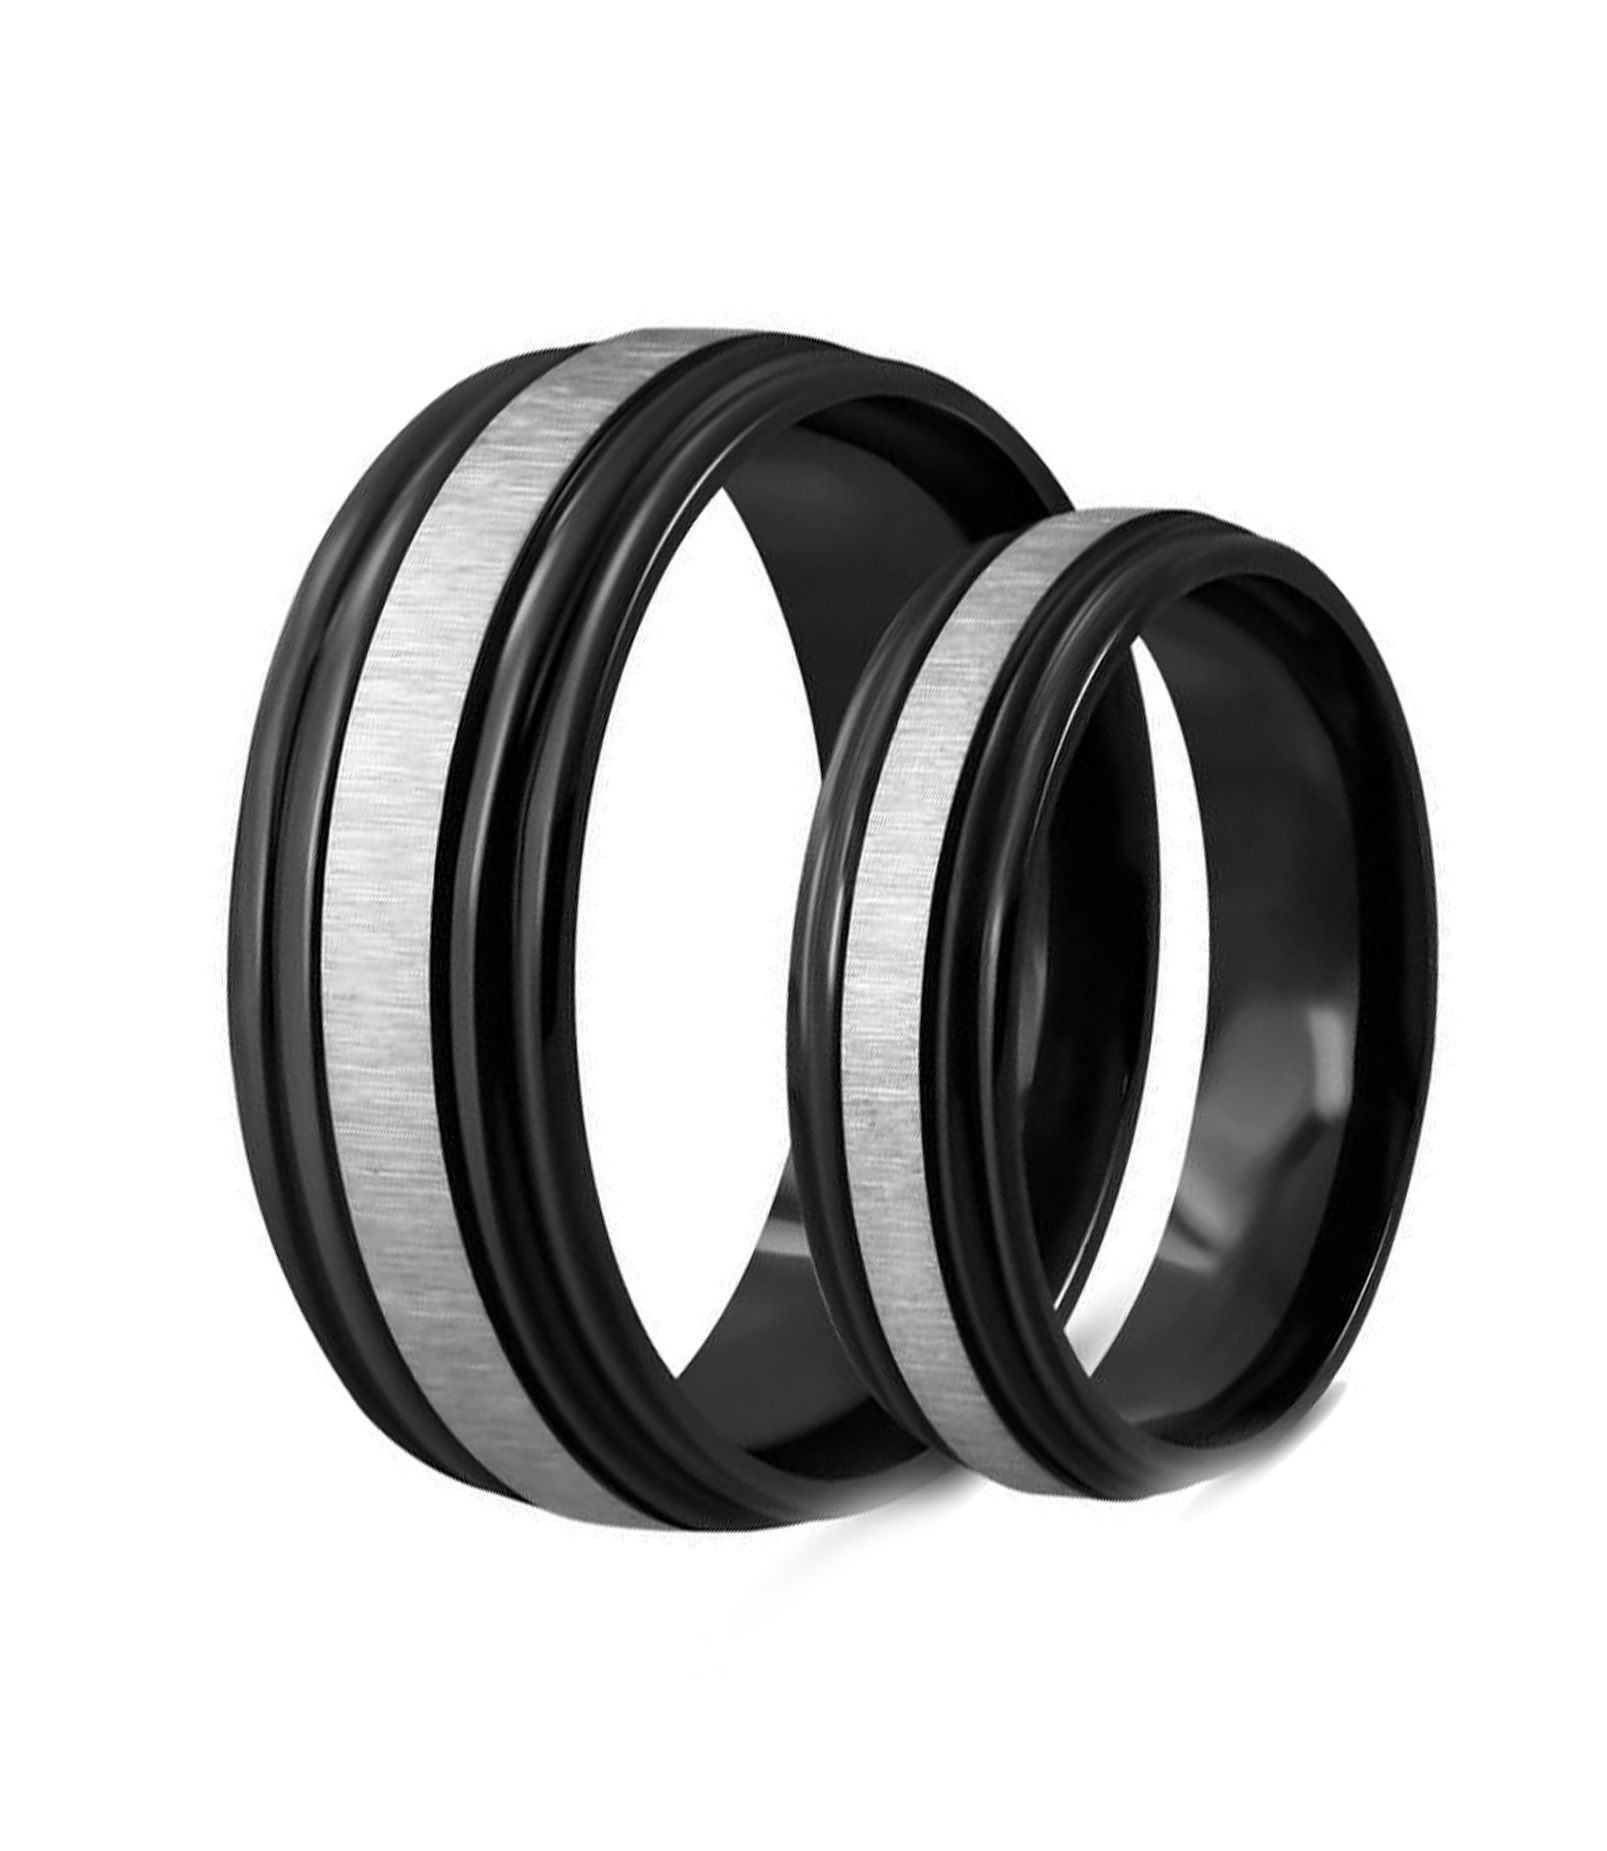 Black Satin Finished Titanium Couple Ring